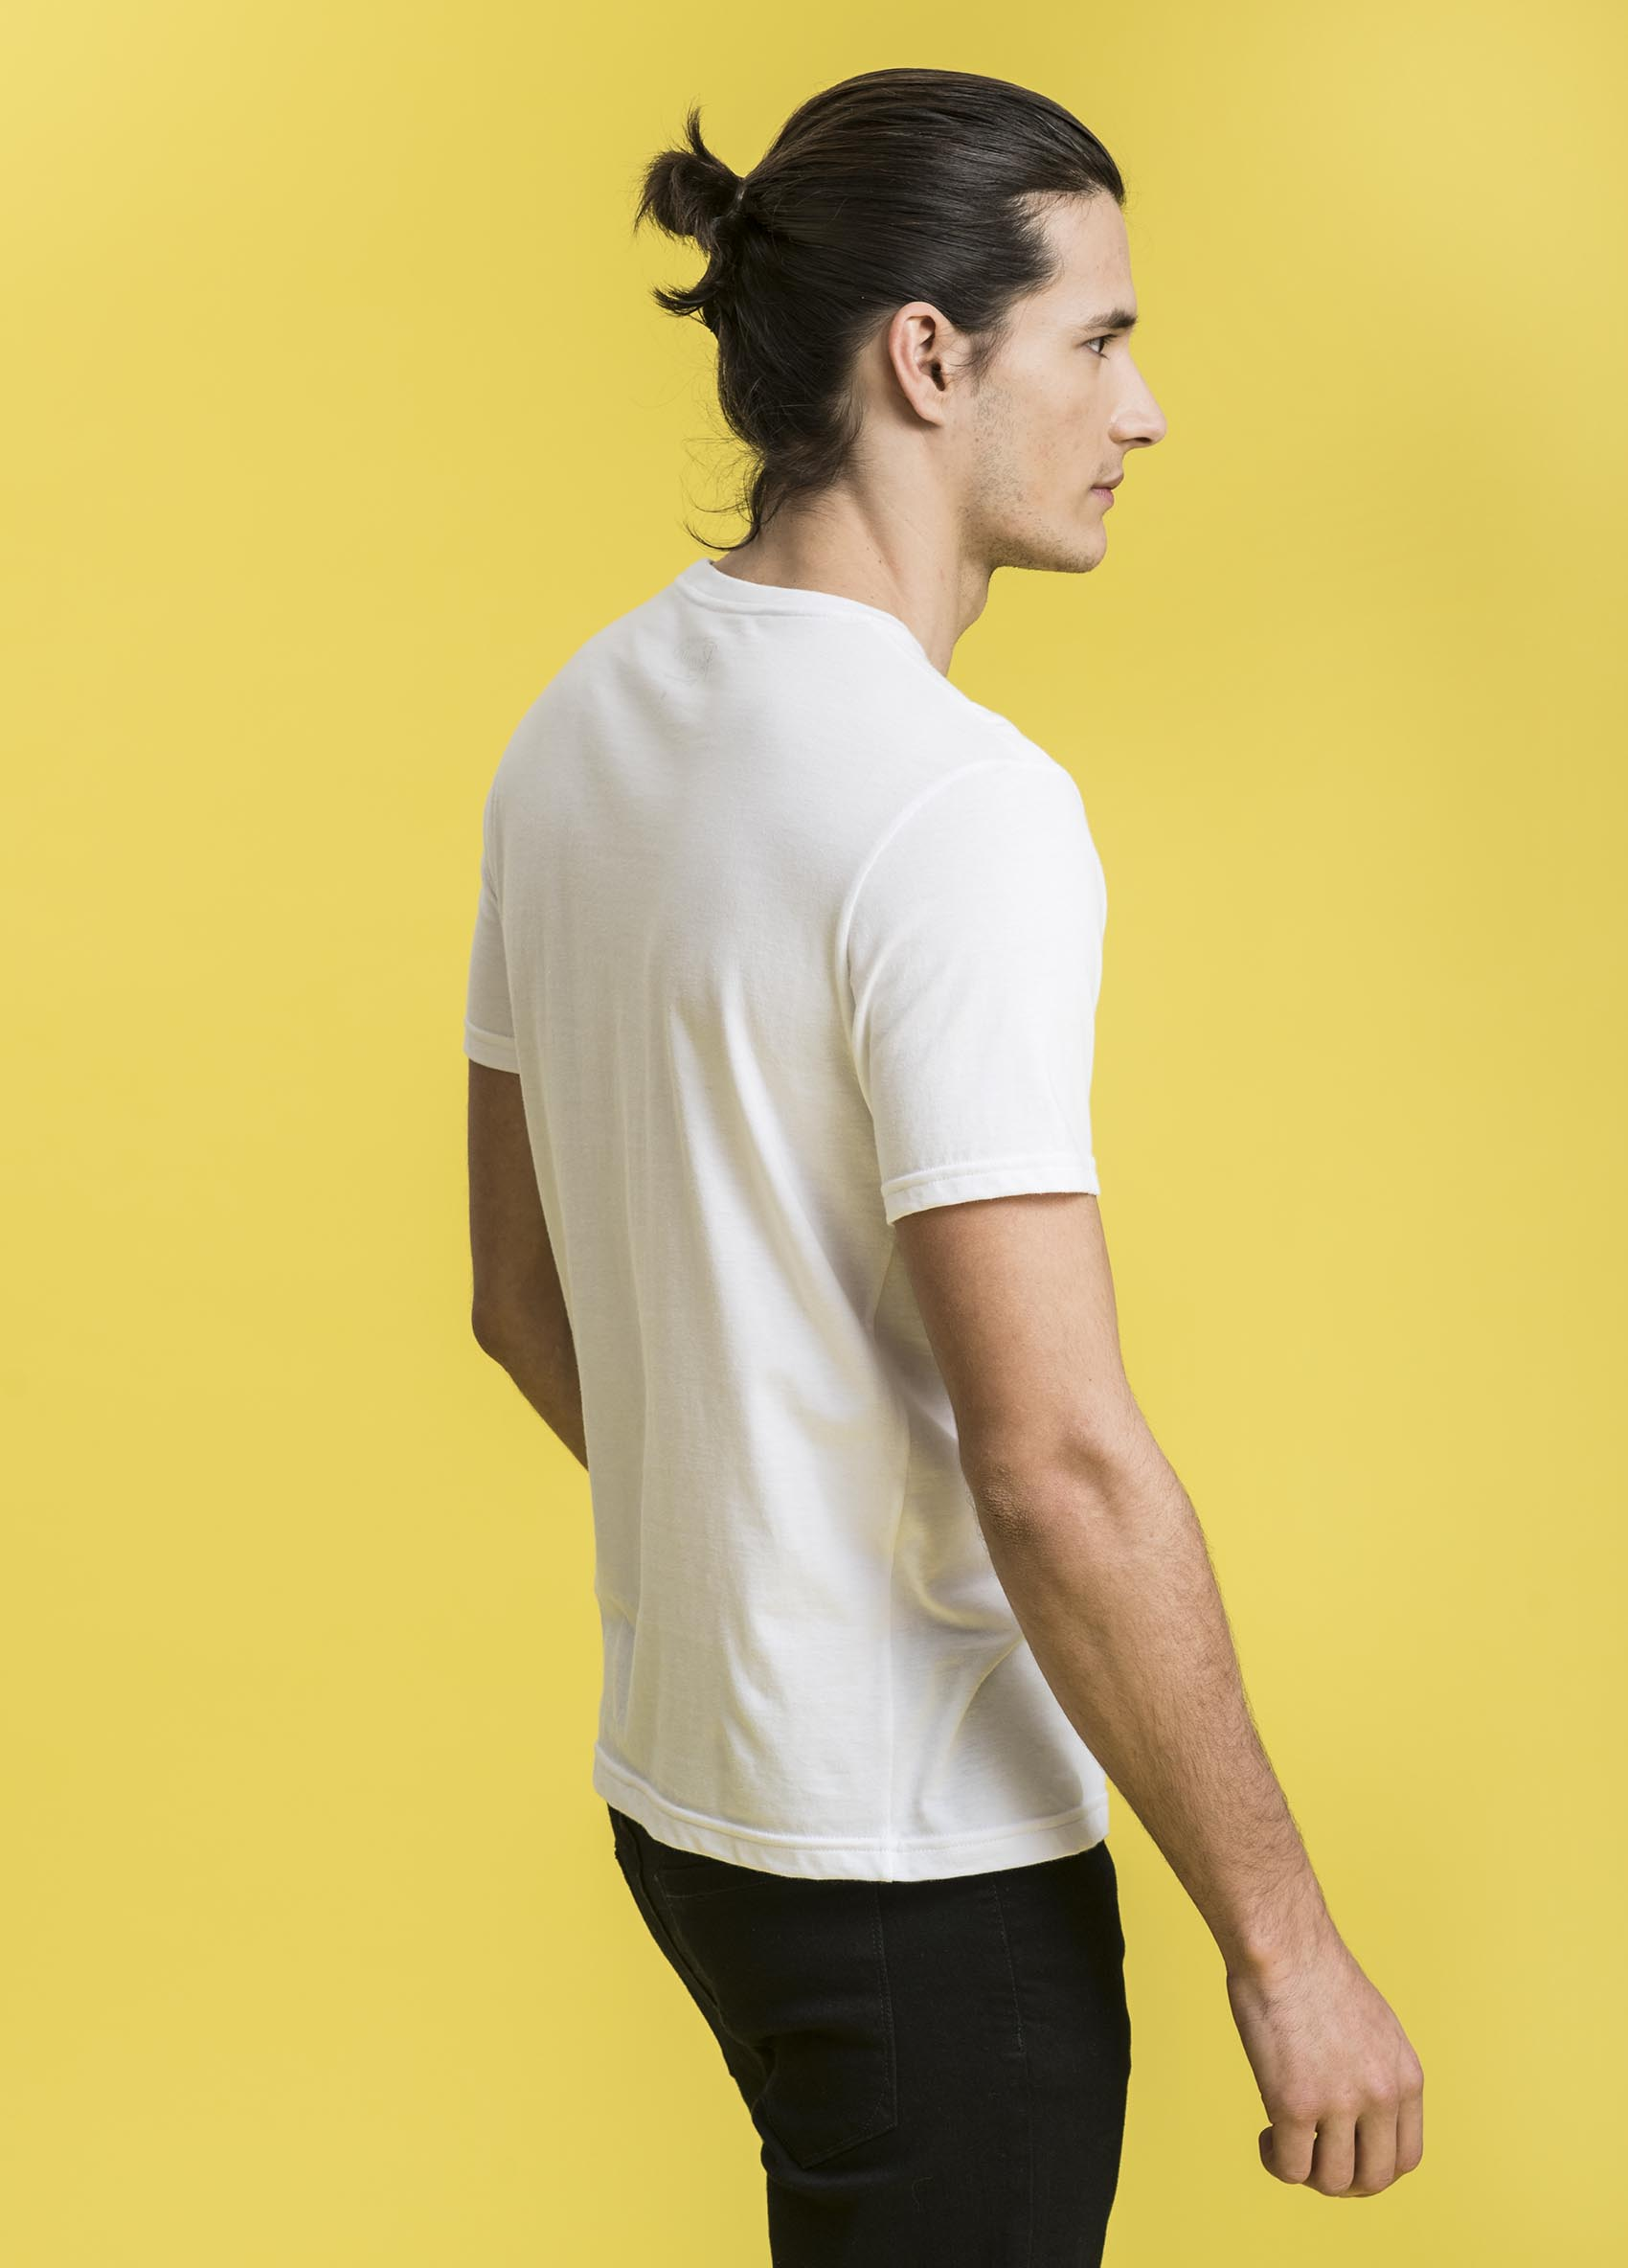 penguin_call-me-old-fashioned-tee_35-25-2019__picture-12401